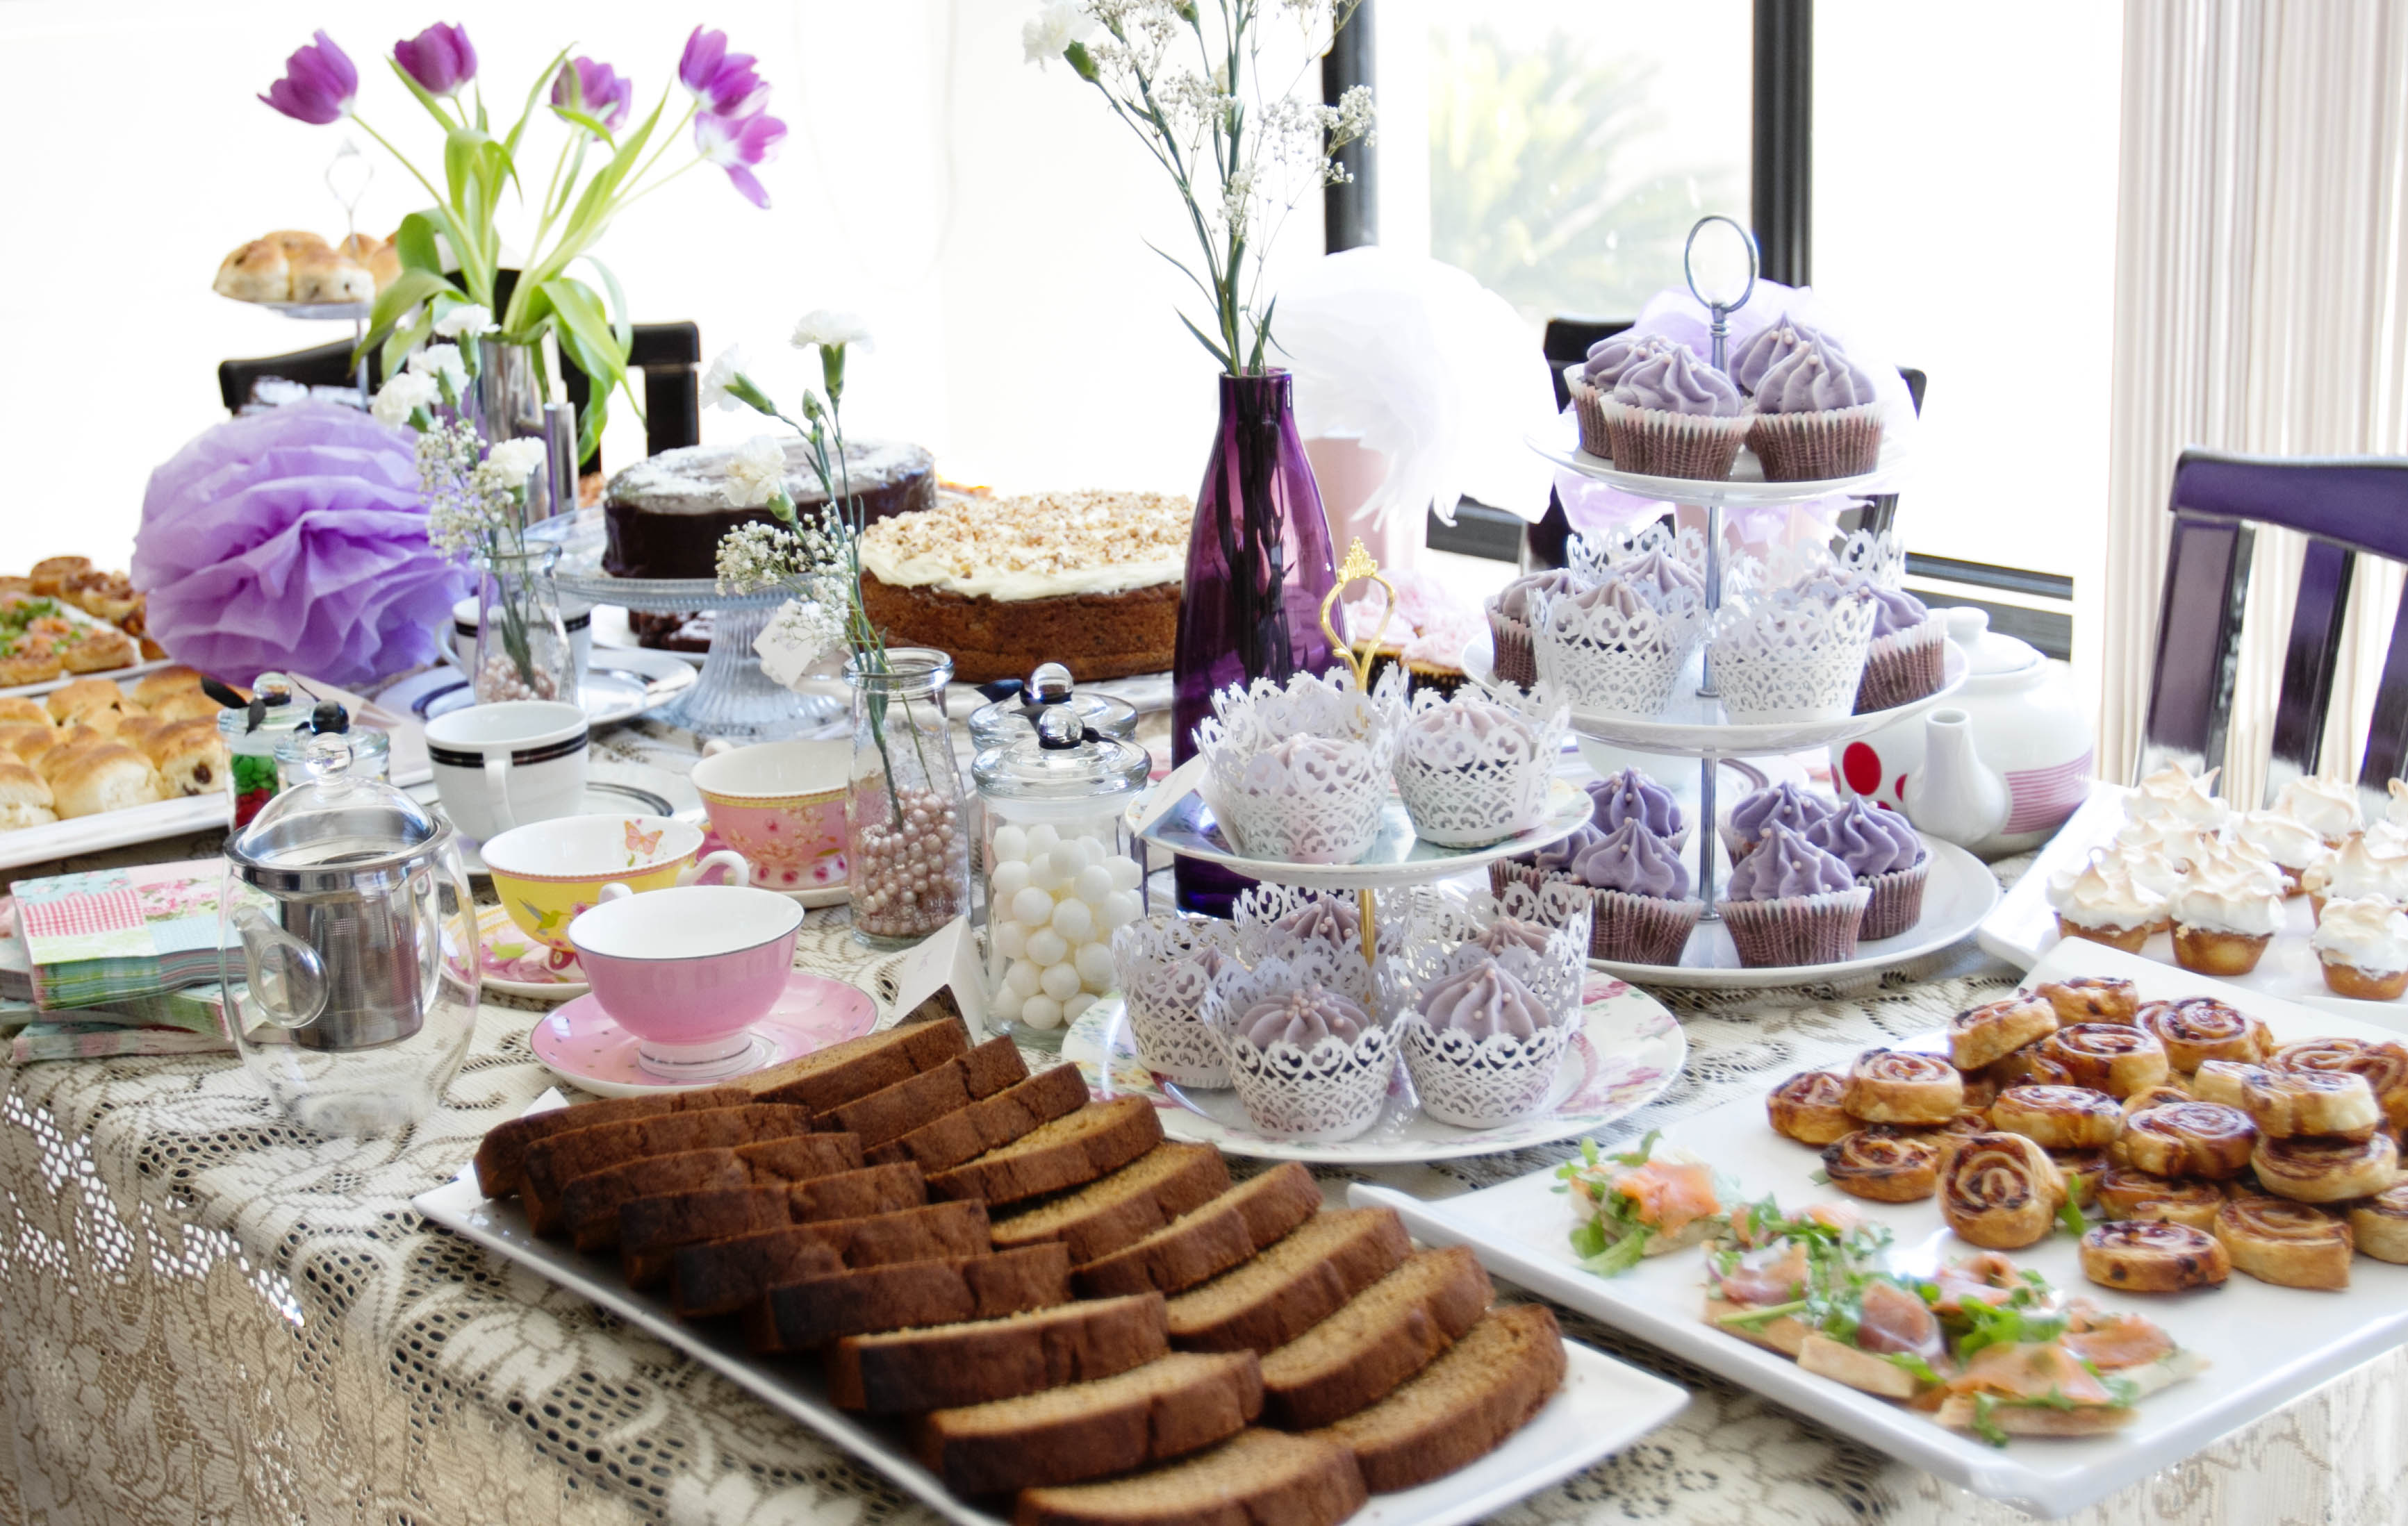 Ideas for afternoon tea party vintage crockery tea party for Kitchen tea table setting ideas